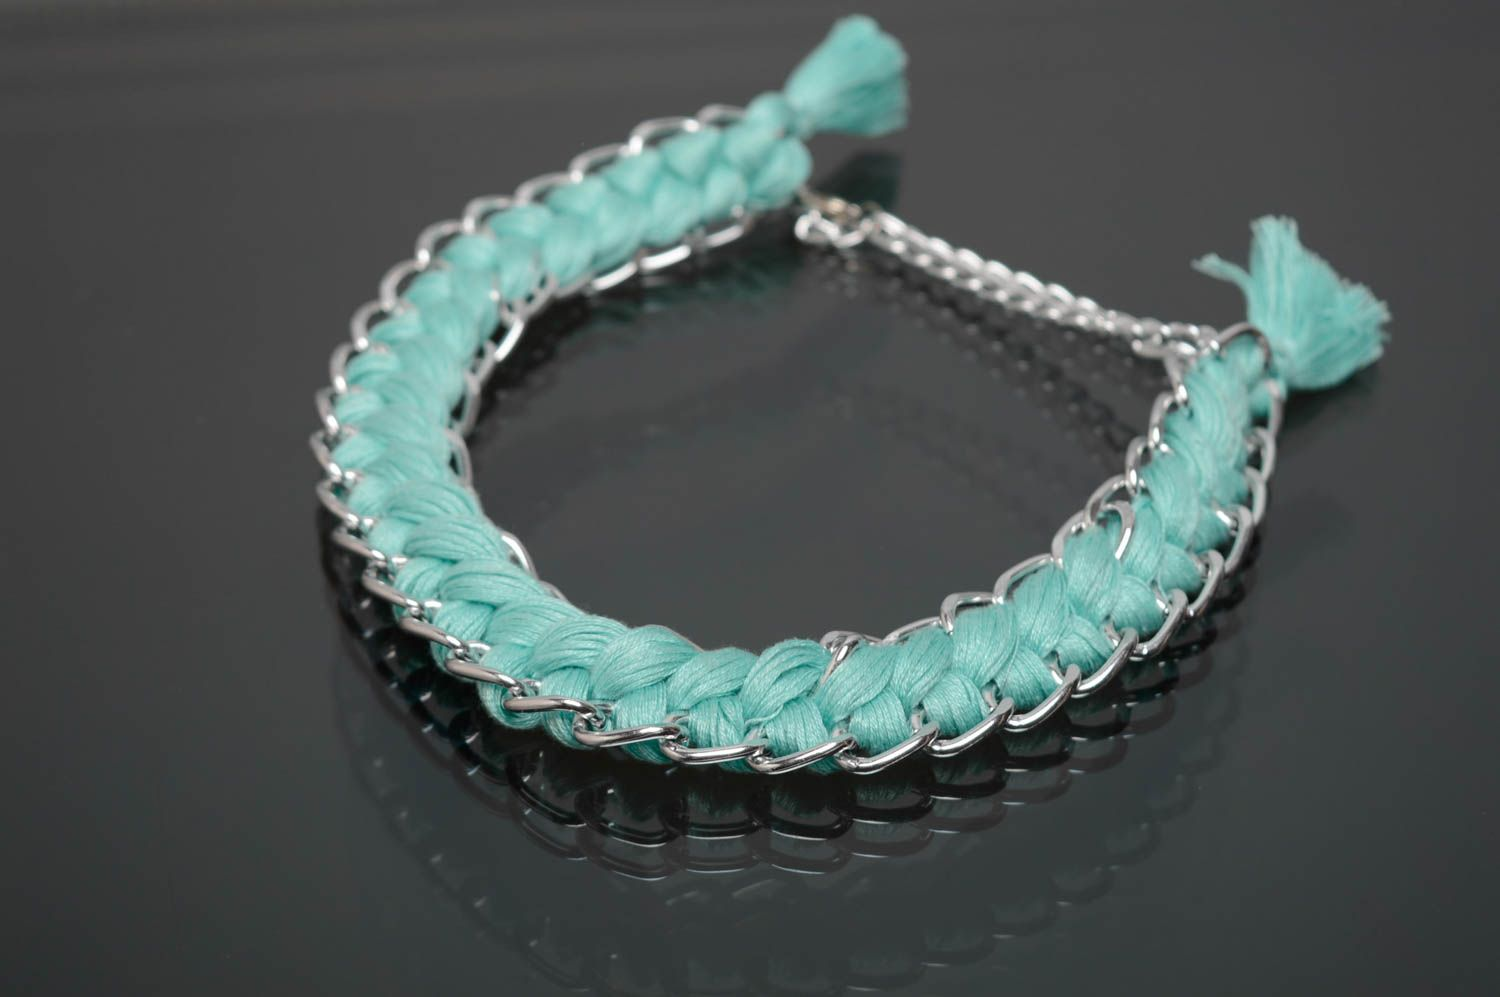 Mint embroidery floss necklace photo 1